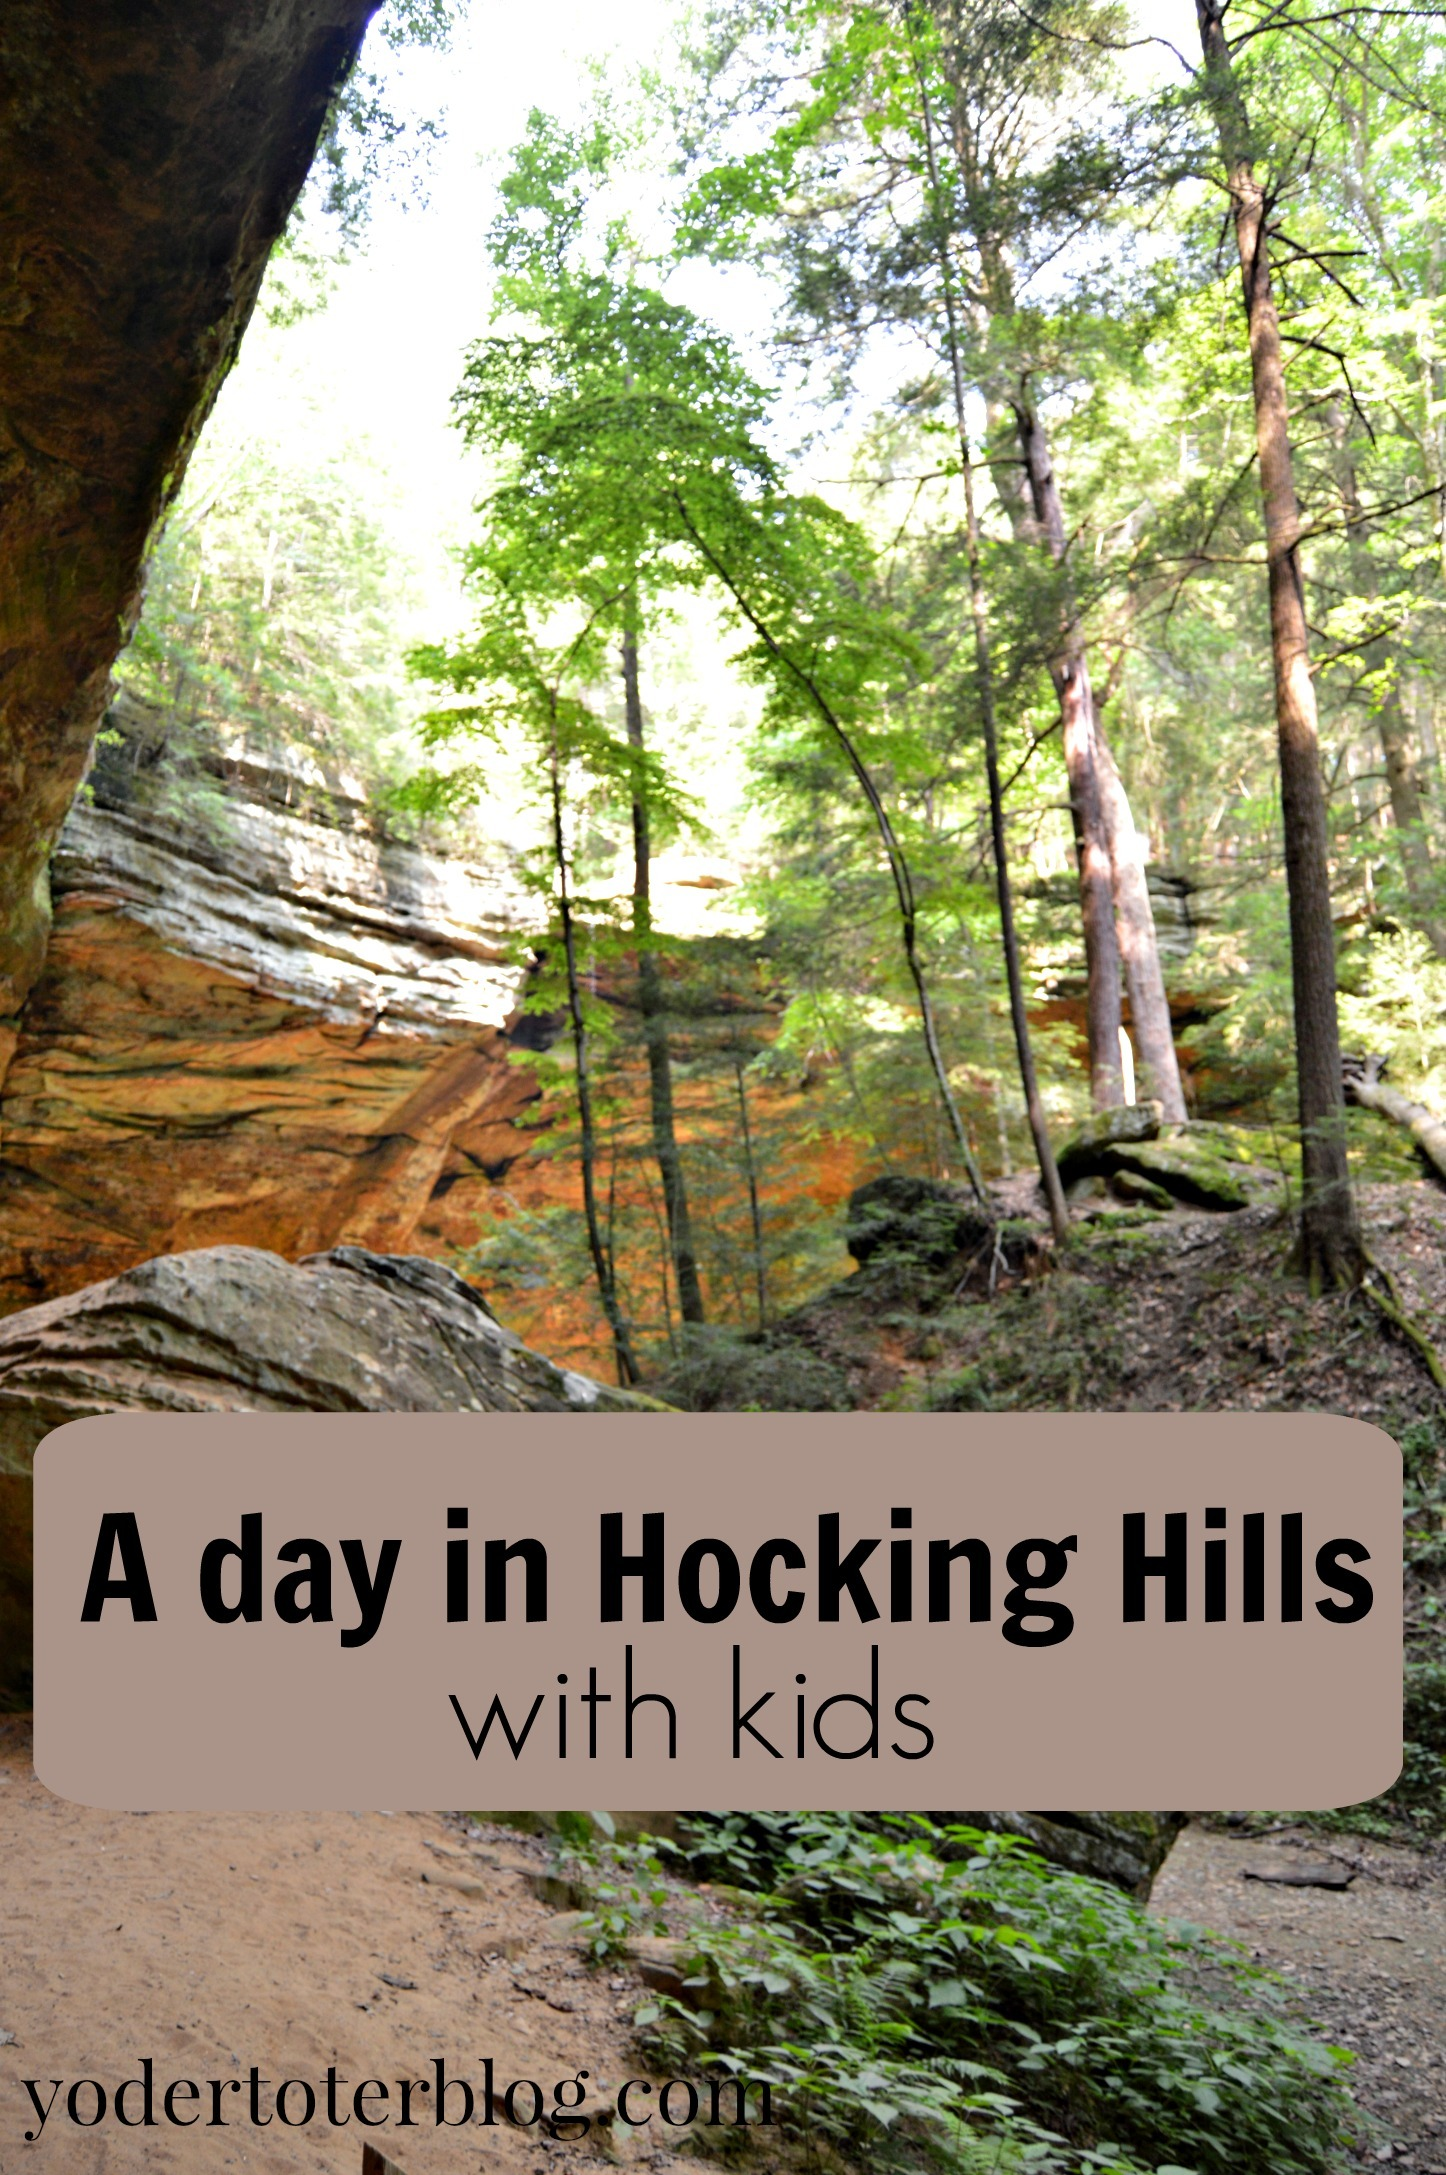 My guide to spending a day in Hocking Hills with your kids.  Tips for if you go!  Hocking Hills makes a great daytrip from Columbus or Cincinnati.